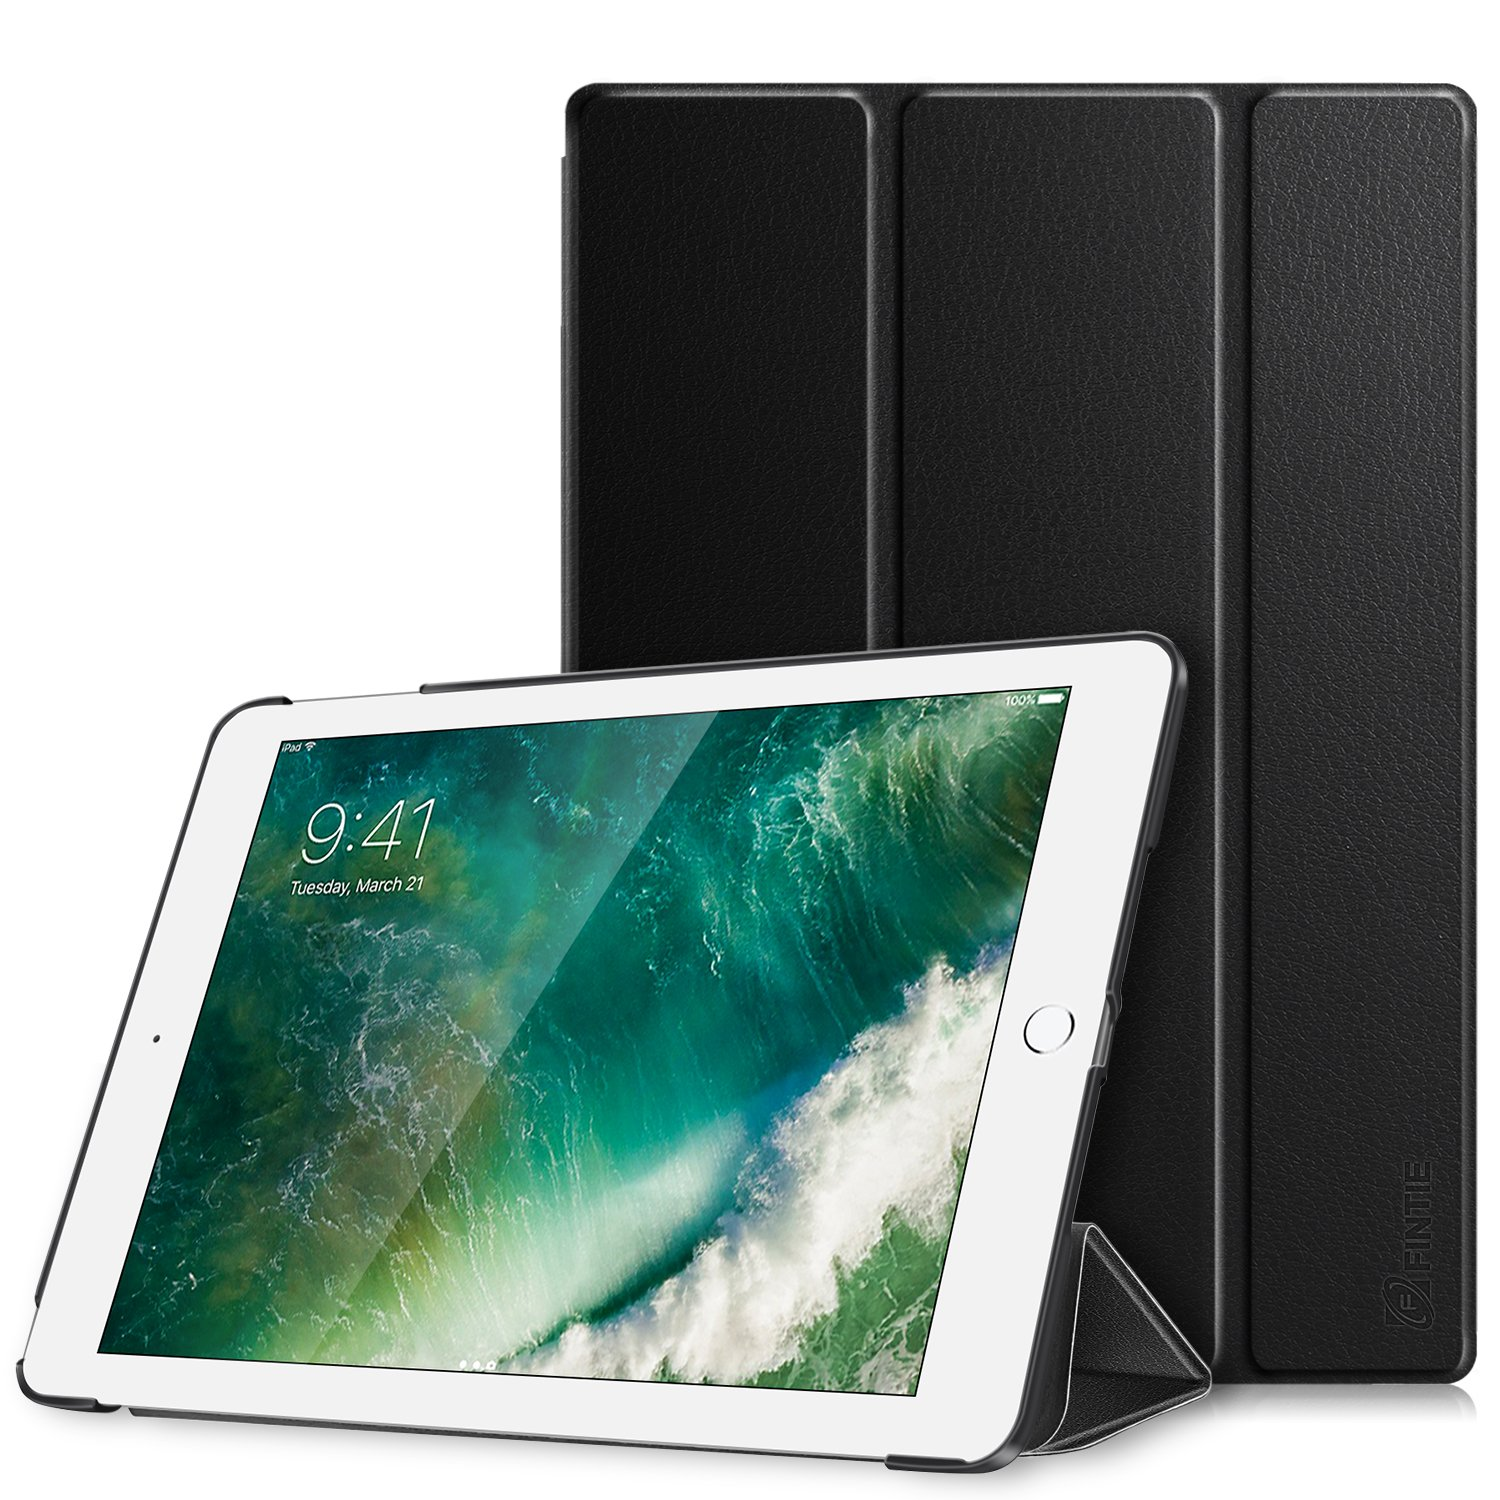 hot sale online 629aa 2b7cd Fintie iPad 9.7 2018/2017 Case - Lightweight Slim Shell Standing Cover with  Auto Wake/Sleep Feature for Apple iPad 6th / 5th Gen 9.7 Inch Tablet, ...